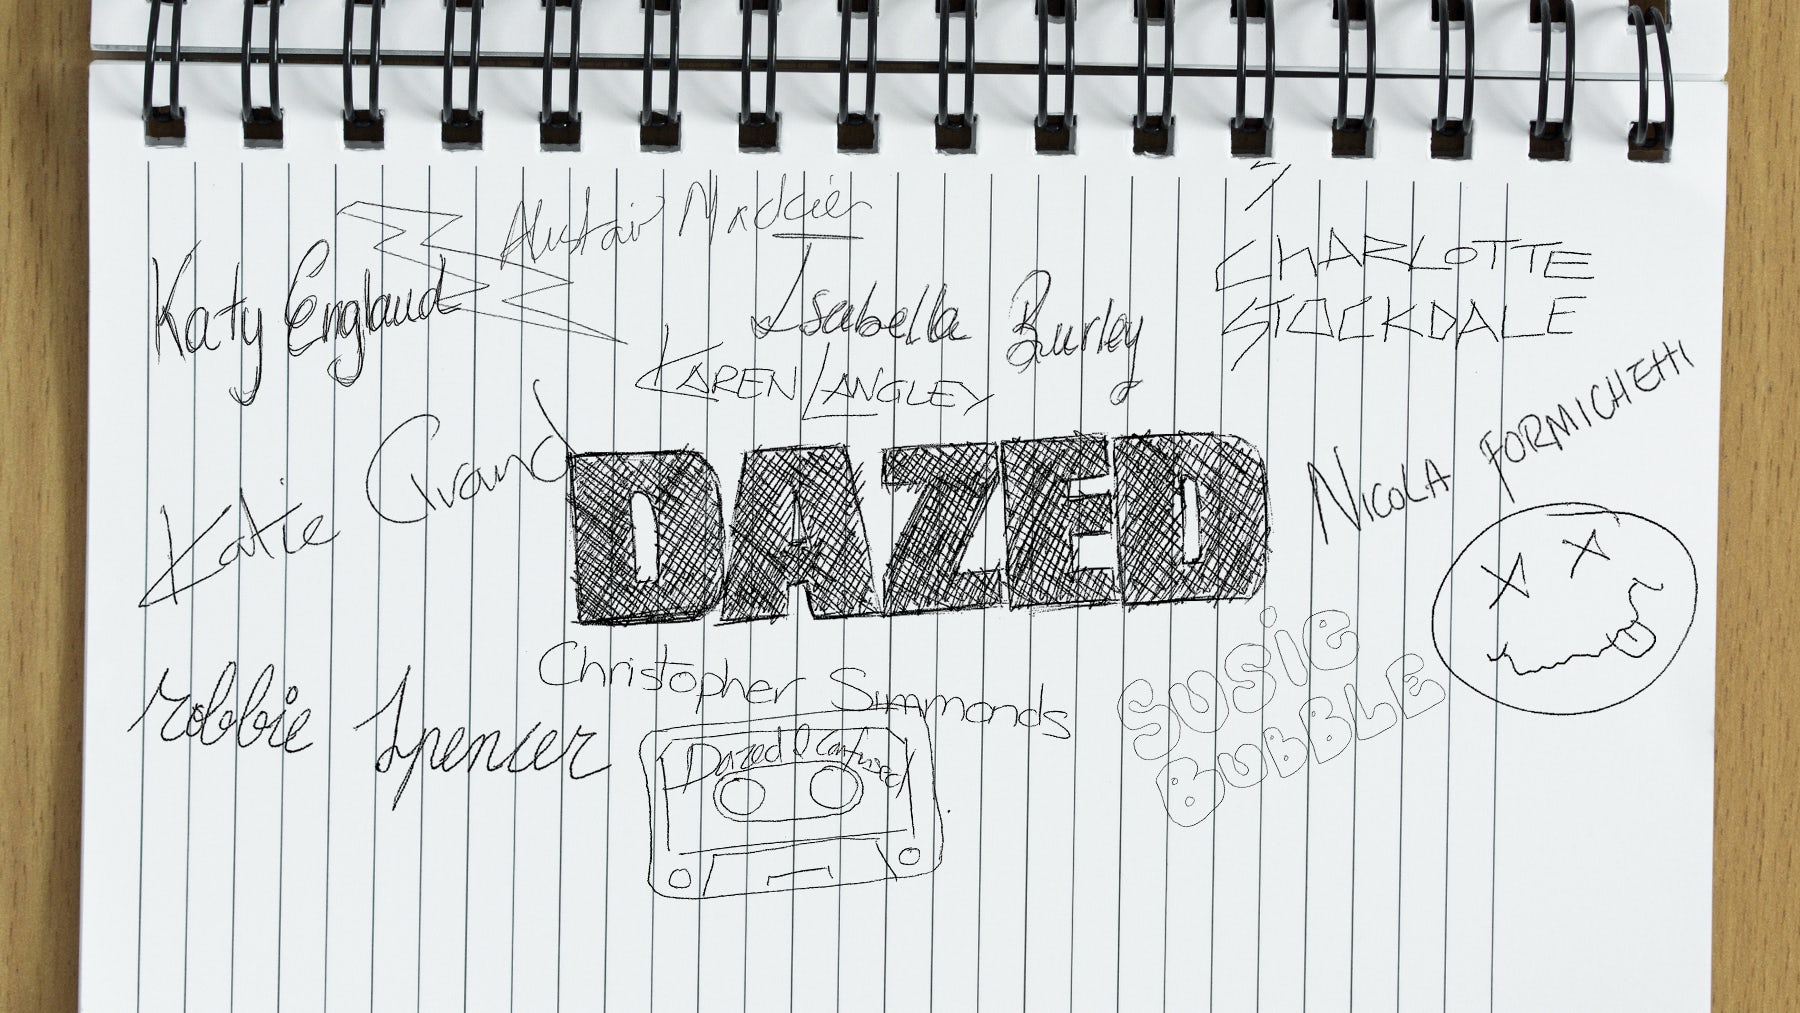 The School of Dazed